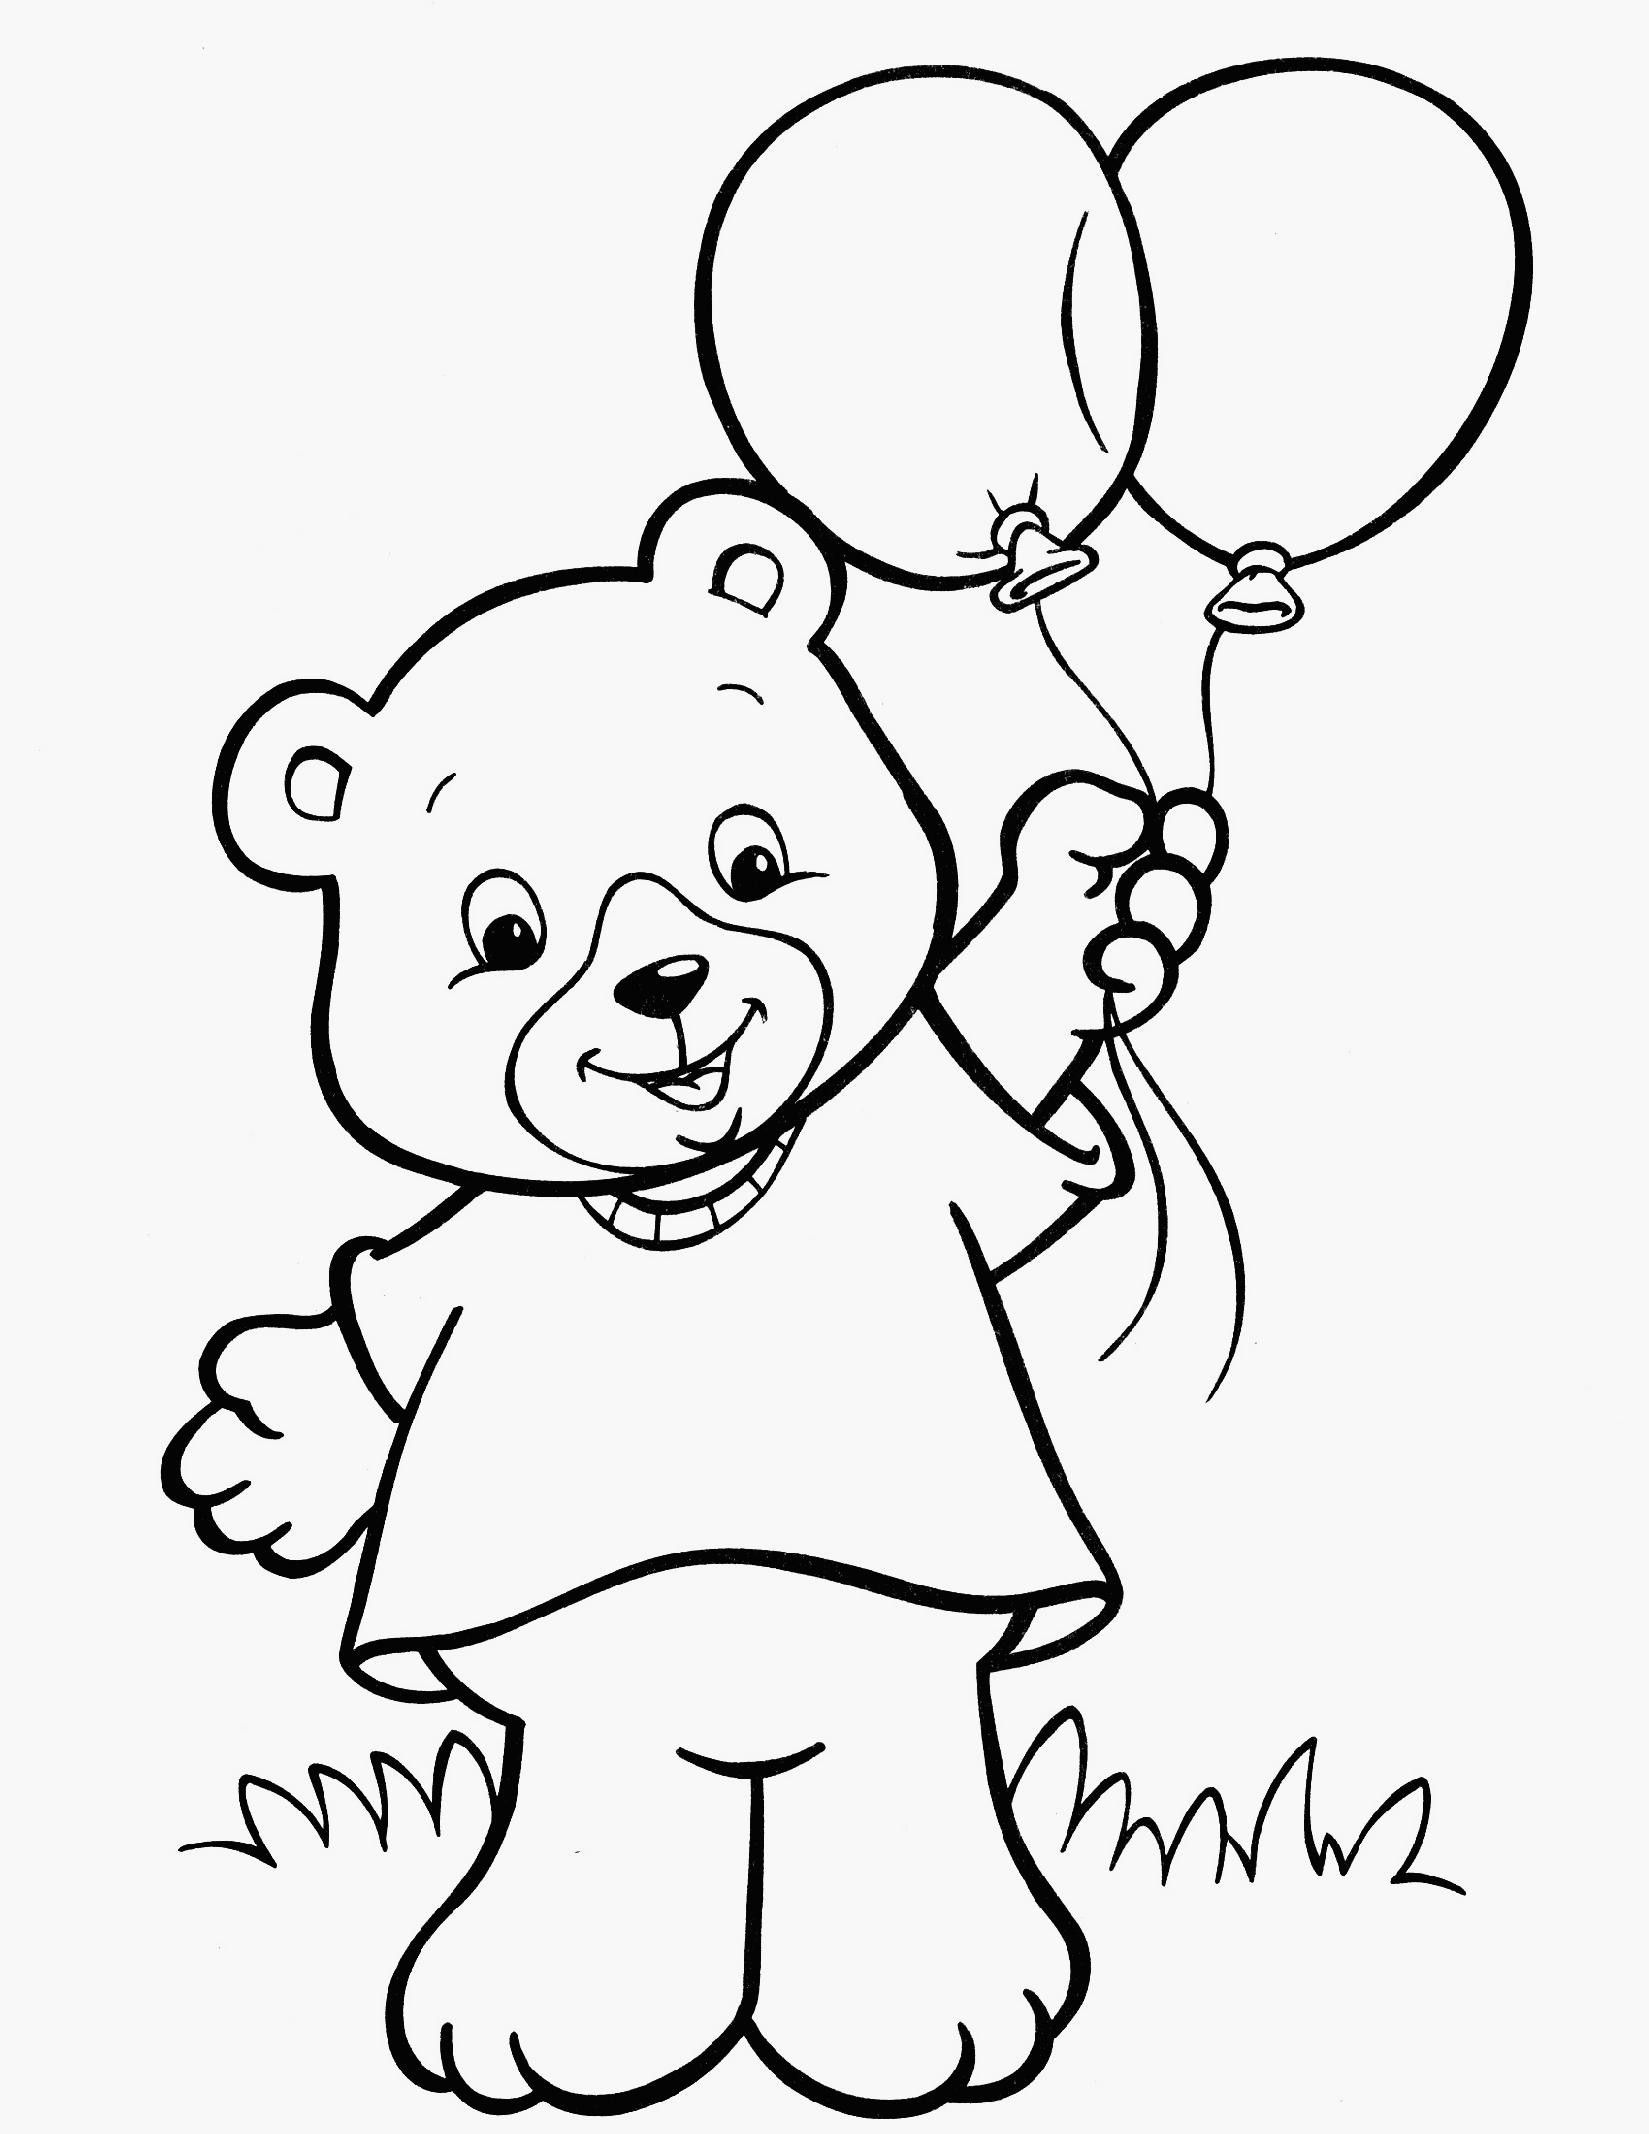 Free Coloring Pages For 3 Year Olds